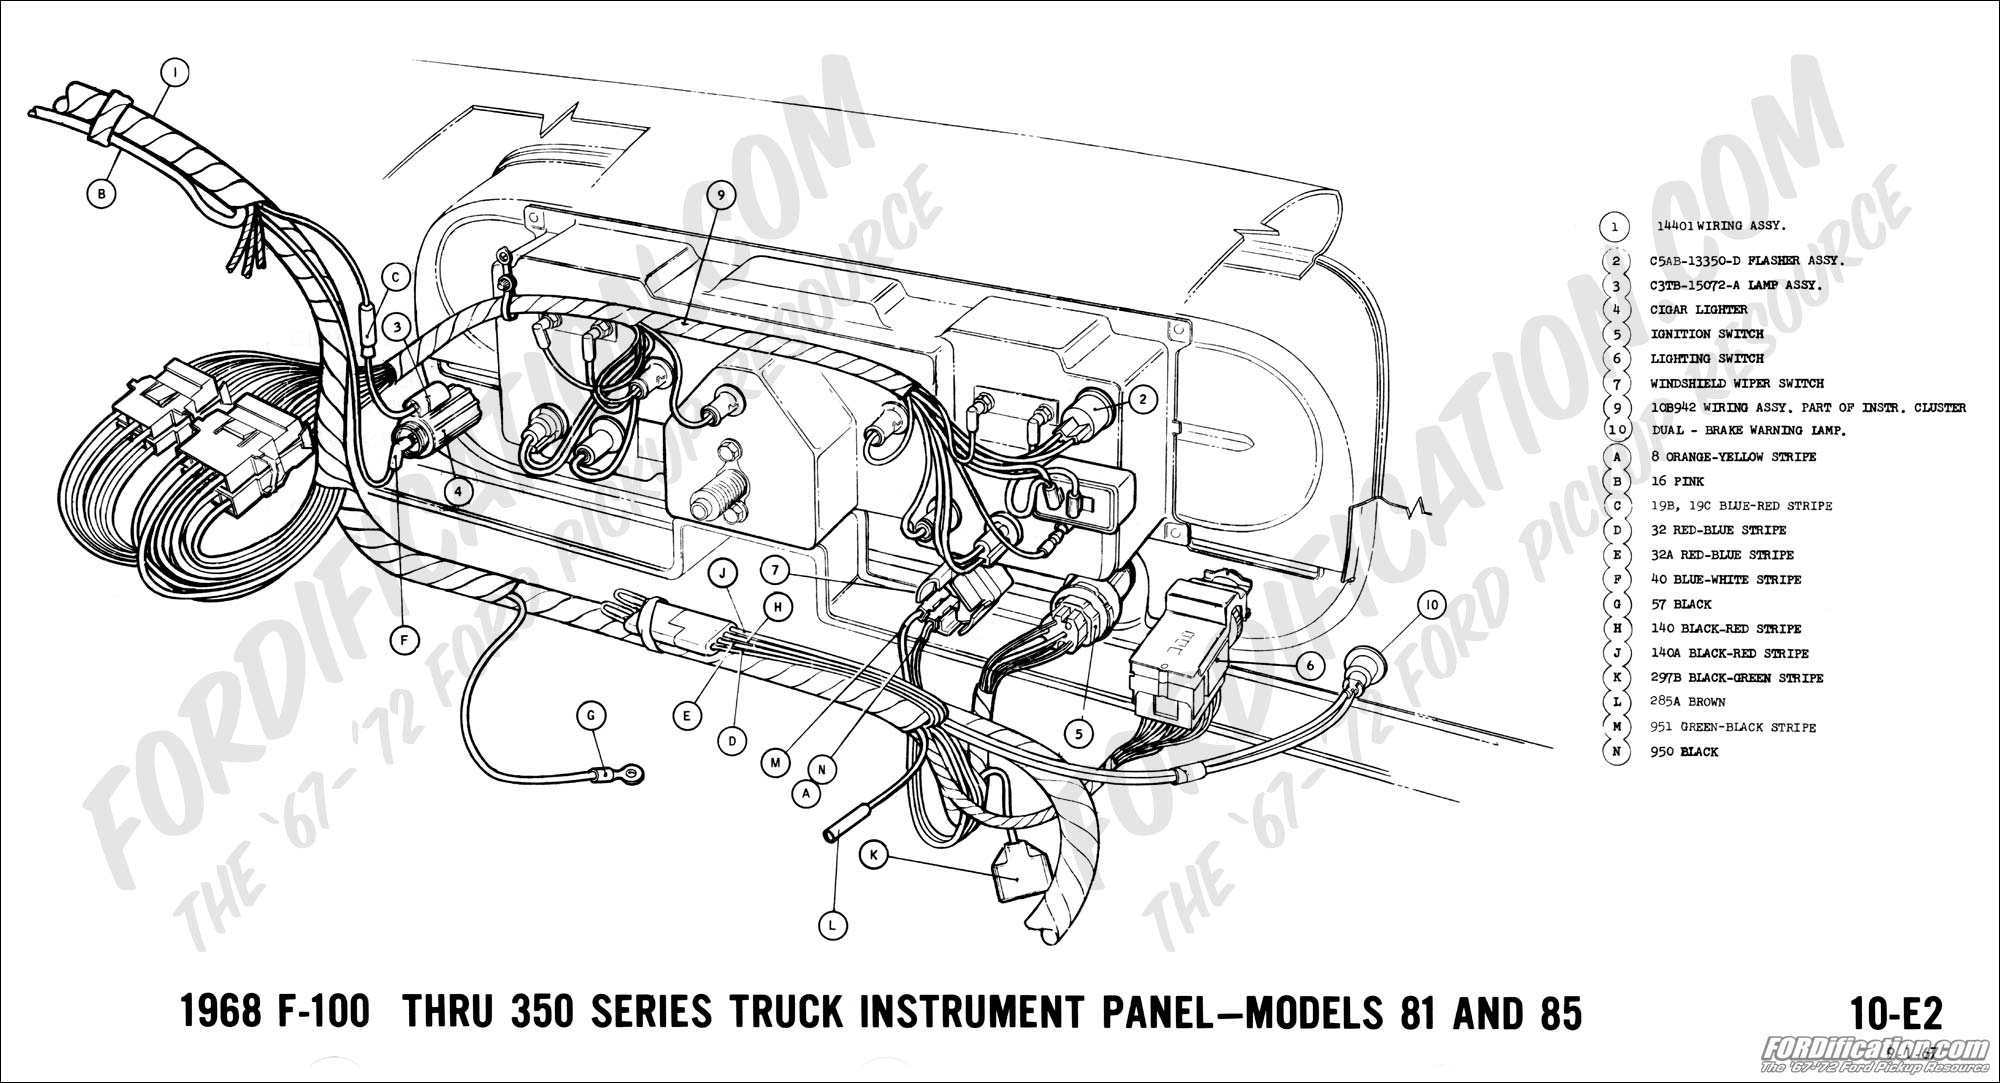 68 camaro sending unit wiring diagram  68  free engine